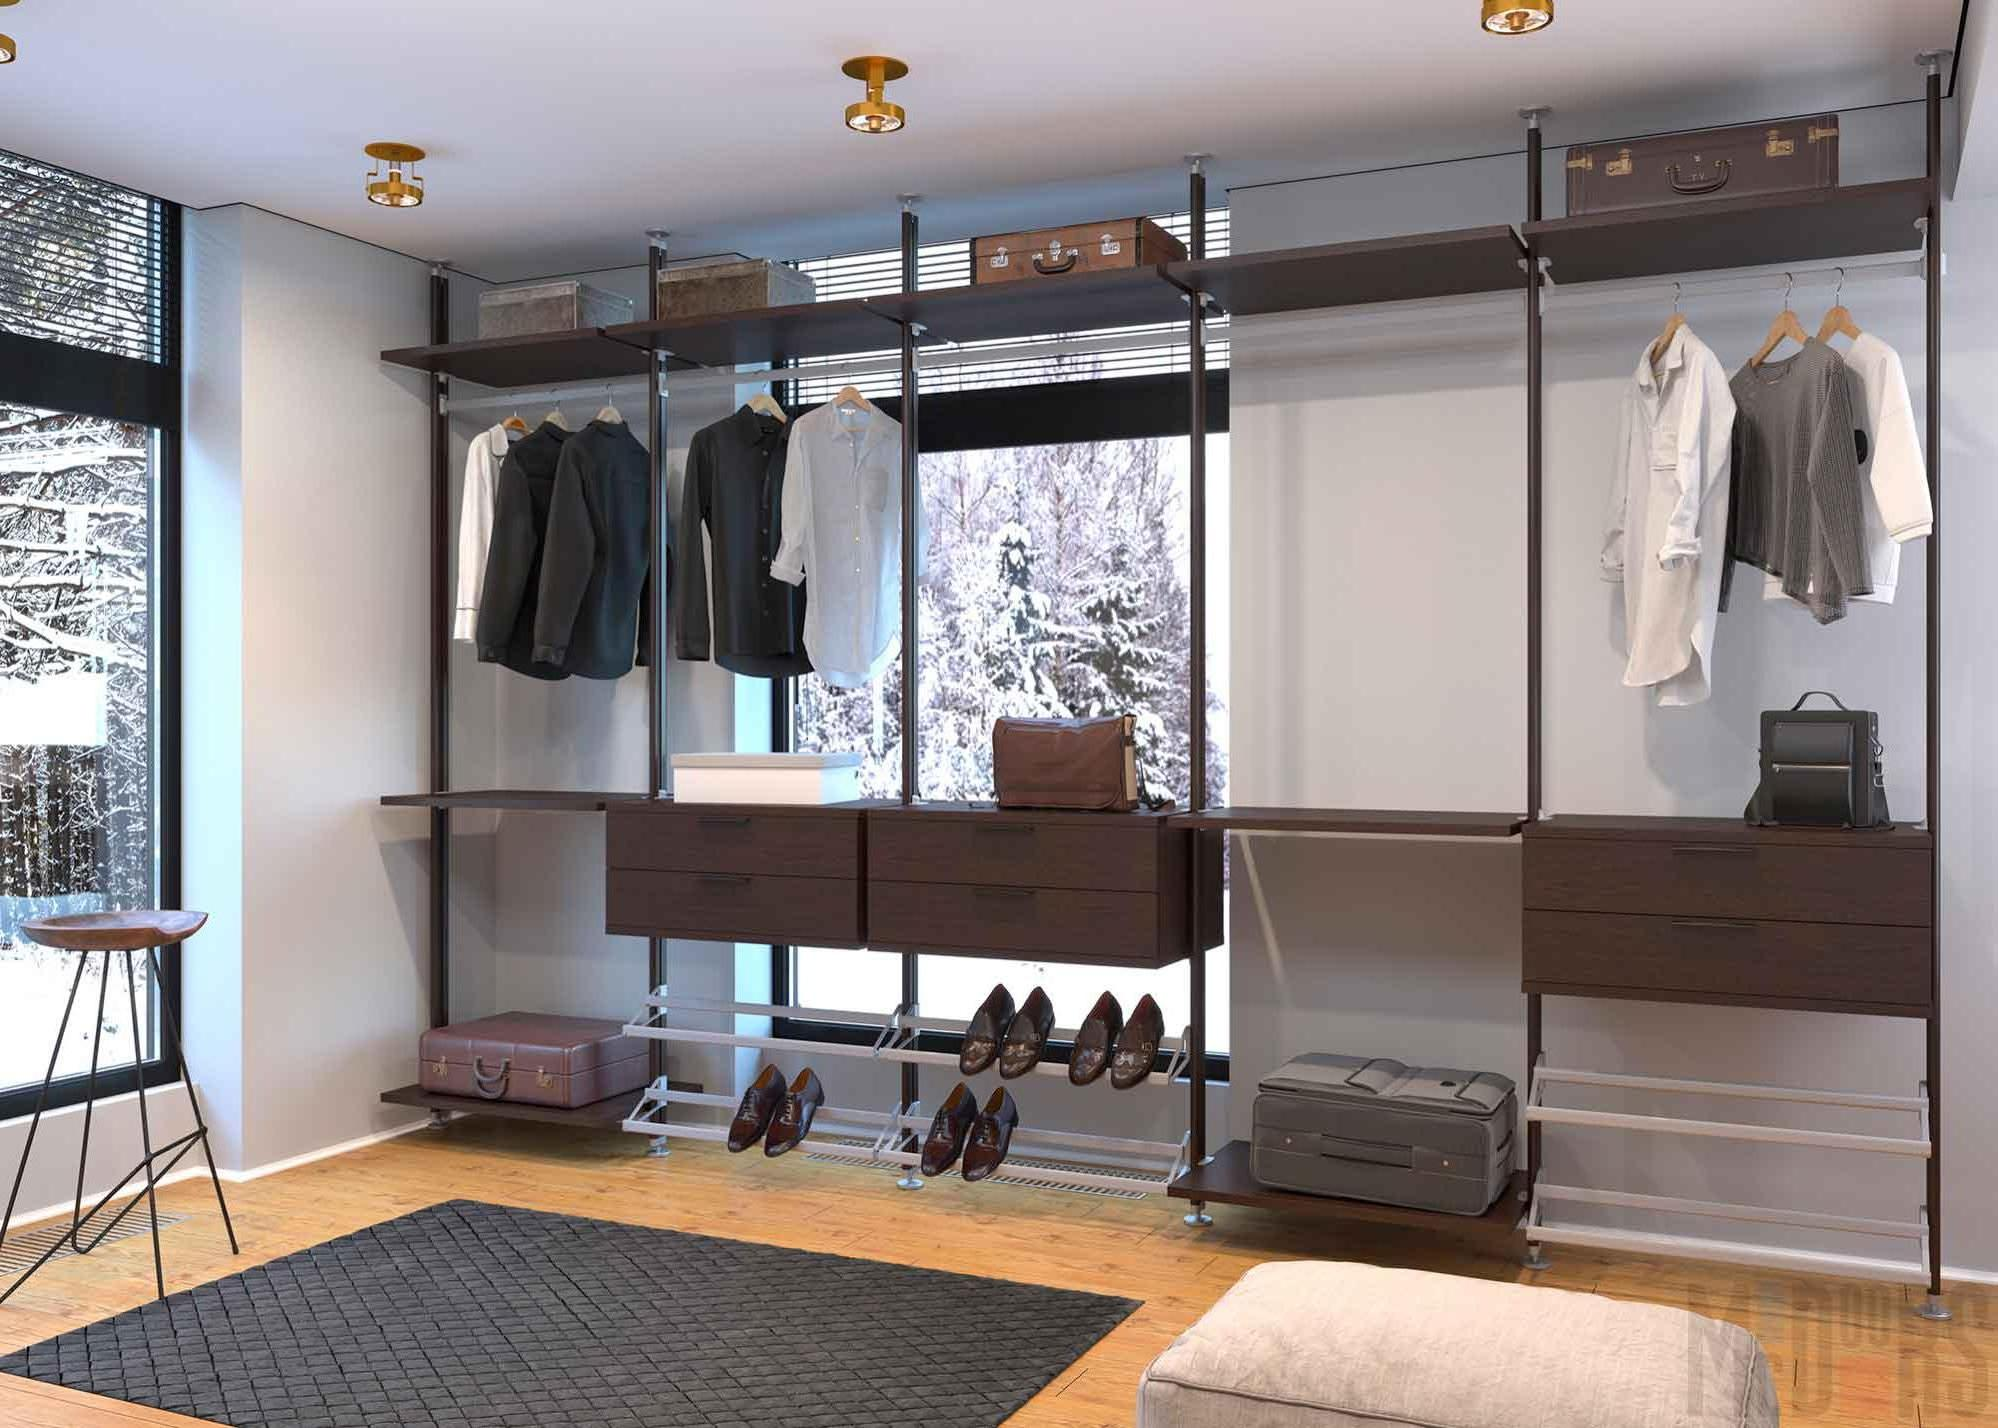 Design of a wardrobe room in a country house